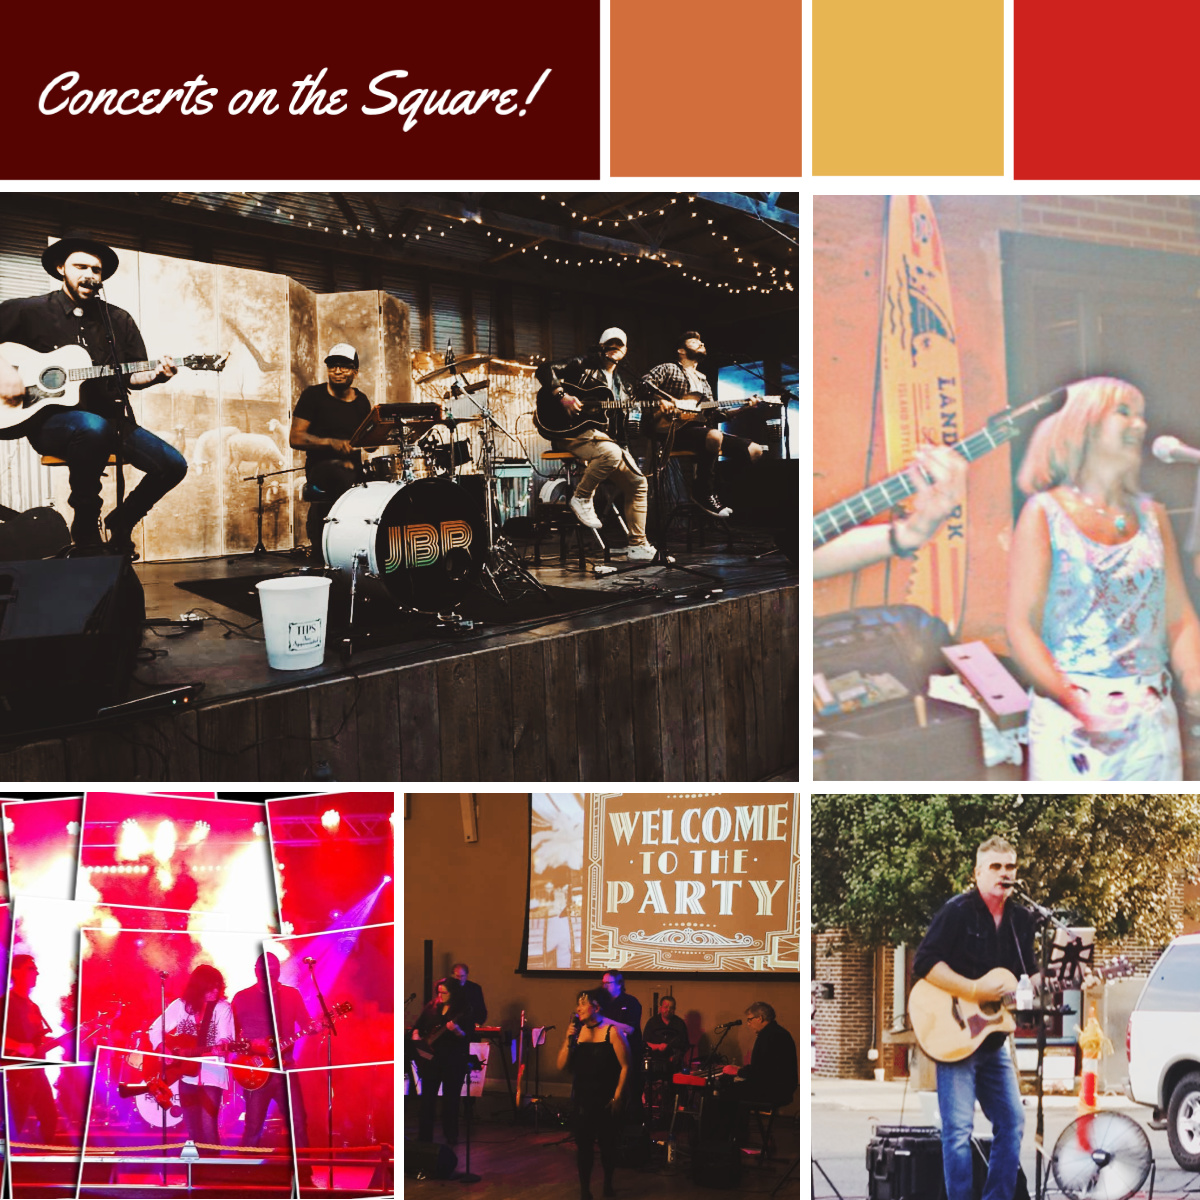 Concerts on the Square in Mocksville